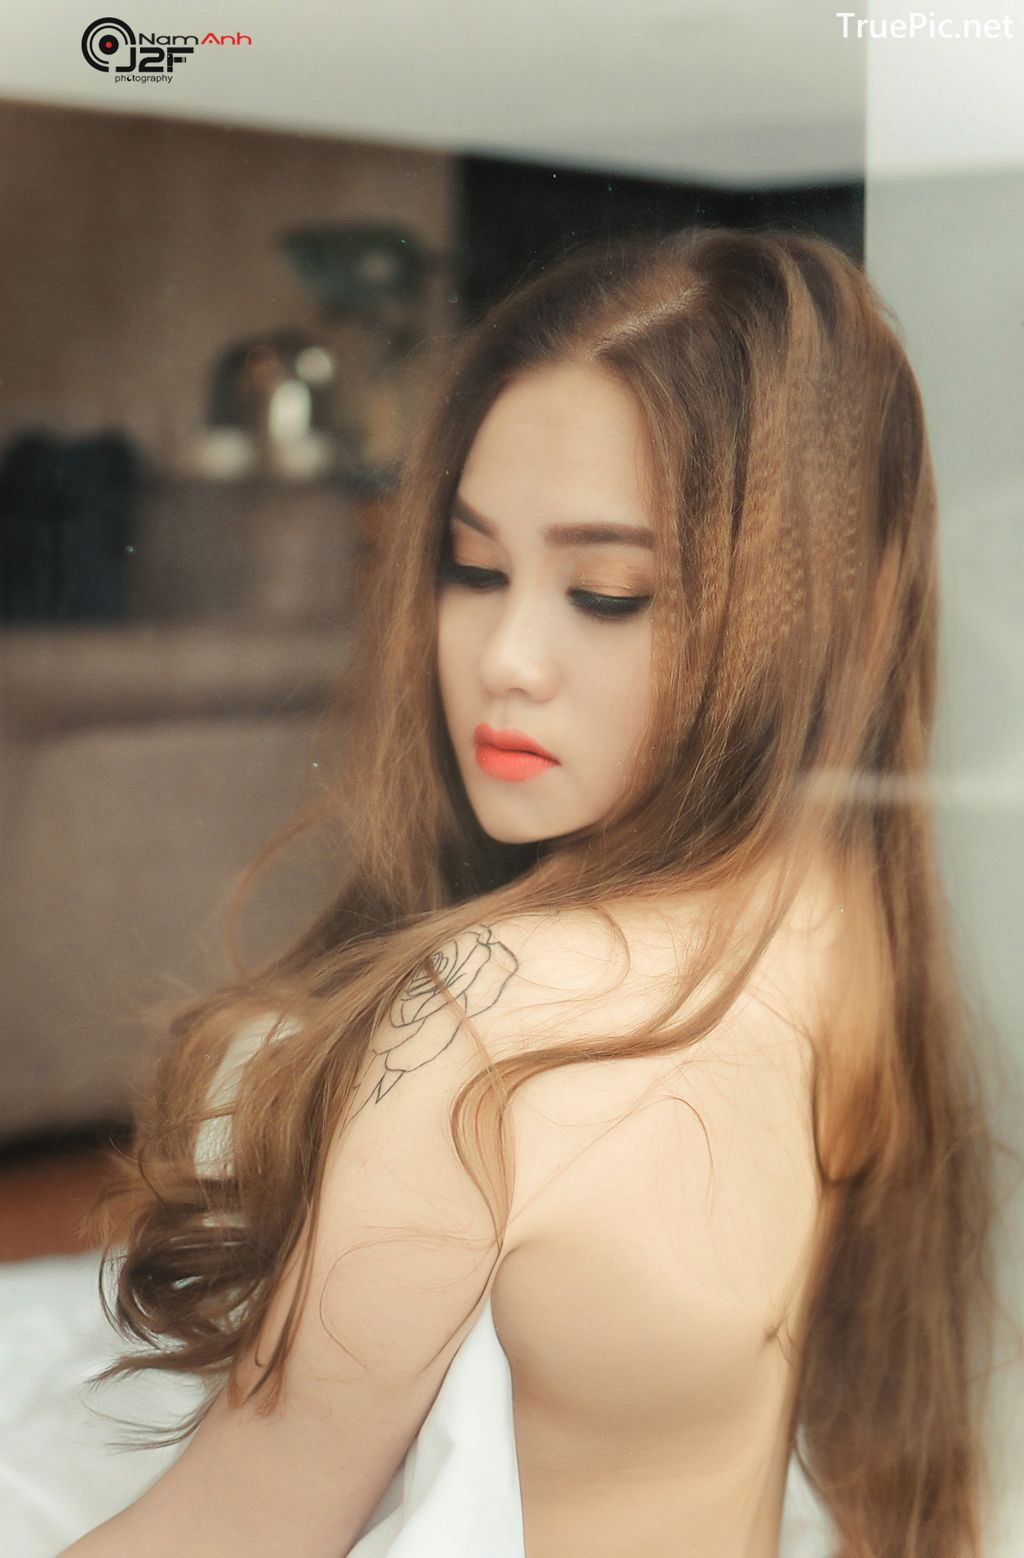 Image-Vietnamese-Model-Sexy-Beauty-of-Beautiful-Girls-Taken-by-NamAnh-Photography-1-TruePic.net- Picture-5